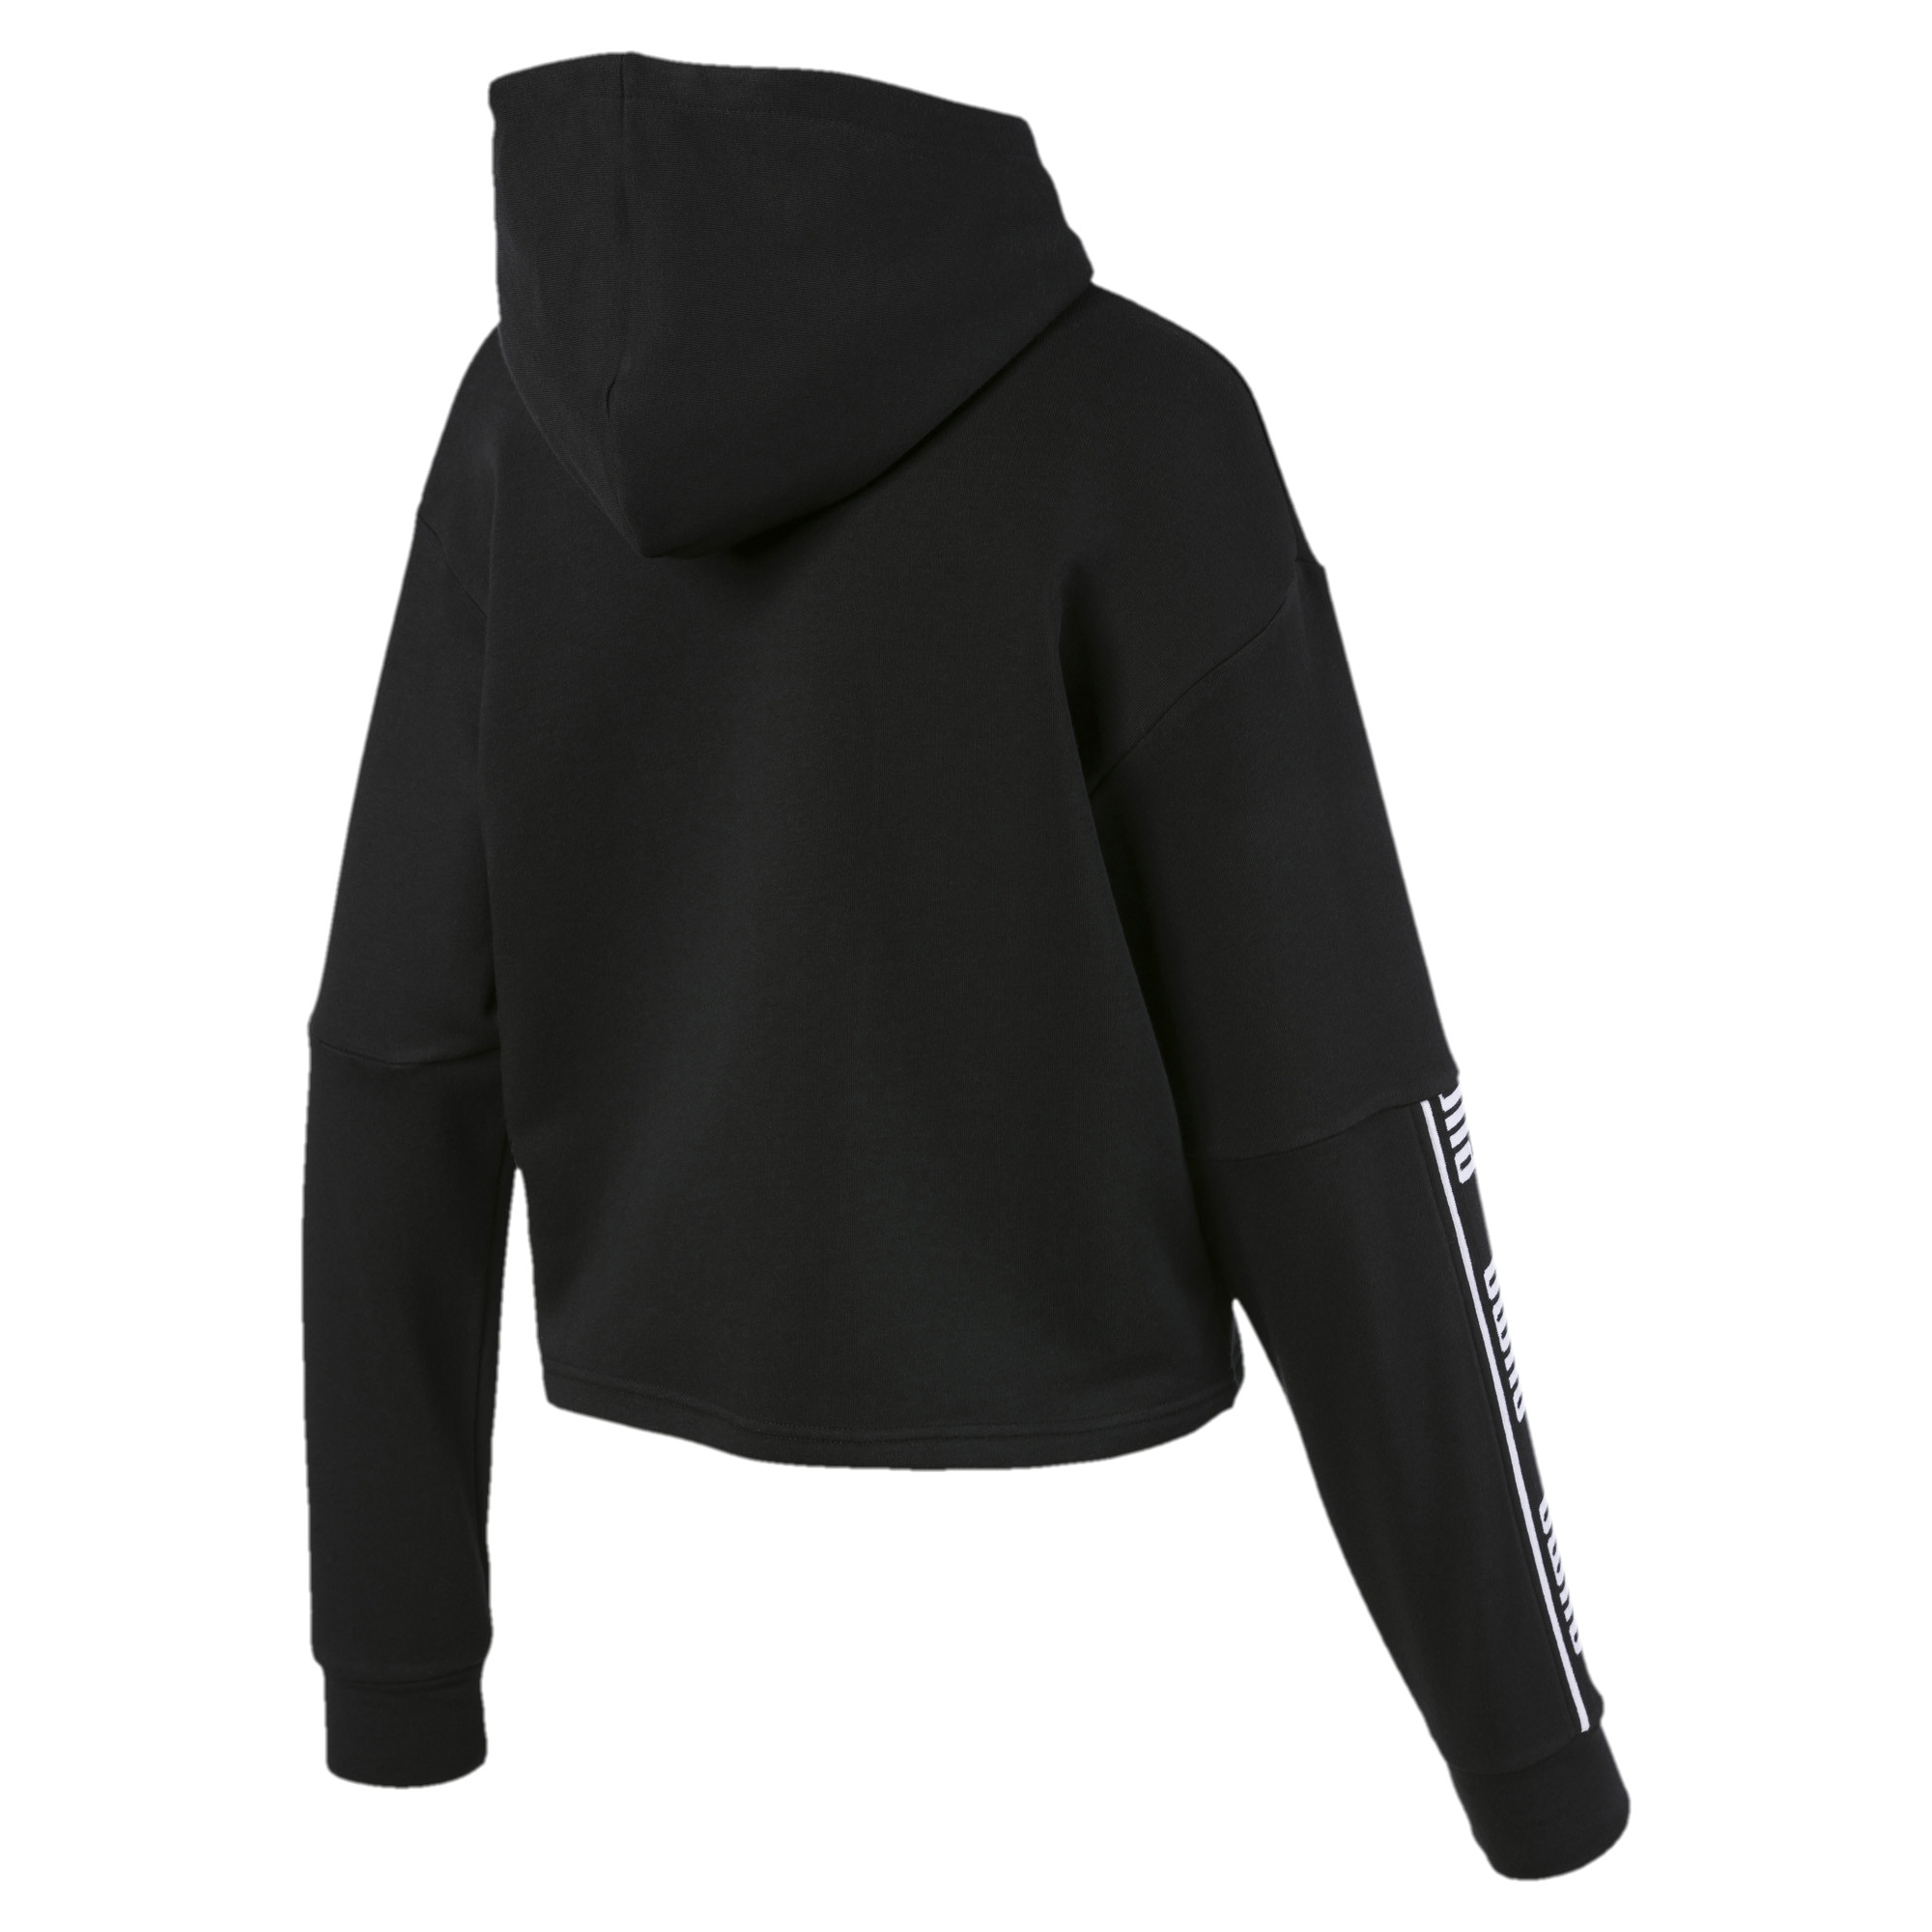 PUMA-Amplified-Women-039-s-Cropped-Hoodie-Women-Sweat-Basics thumbnail 3